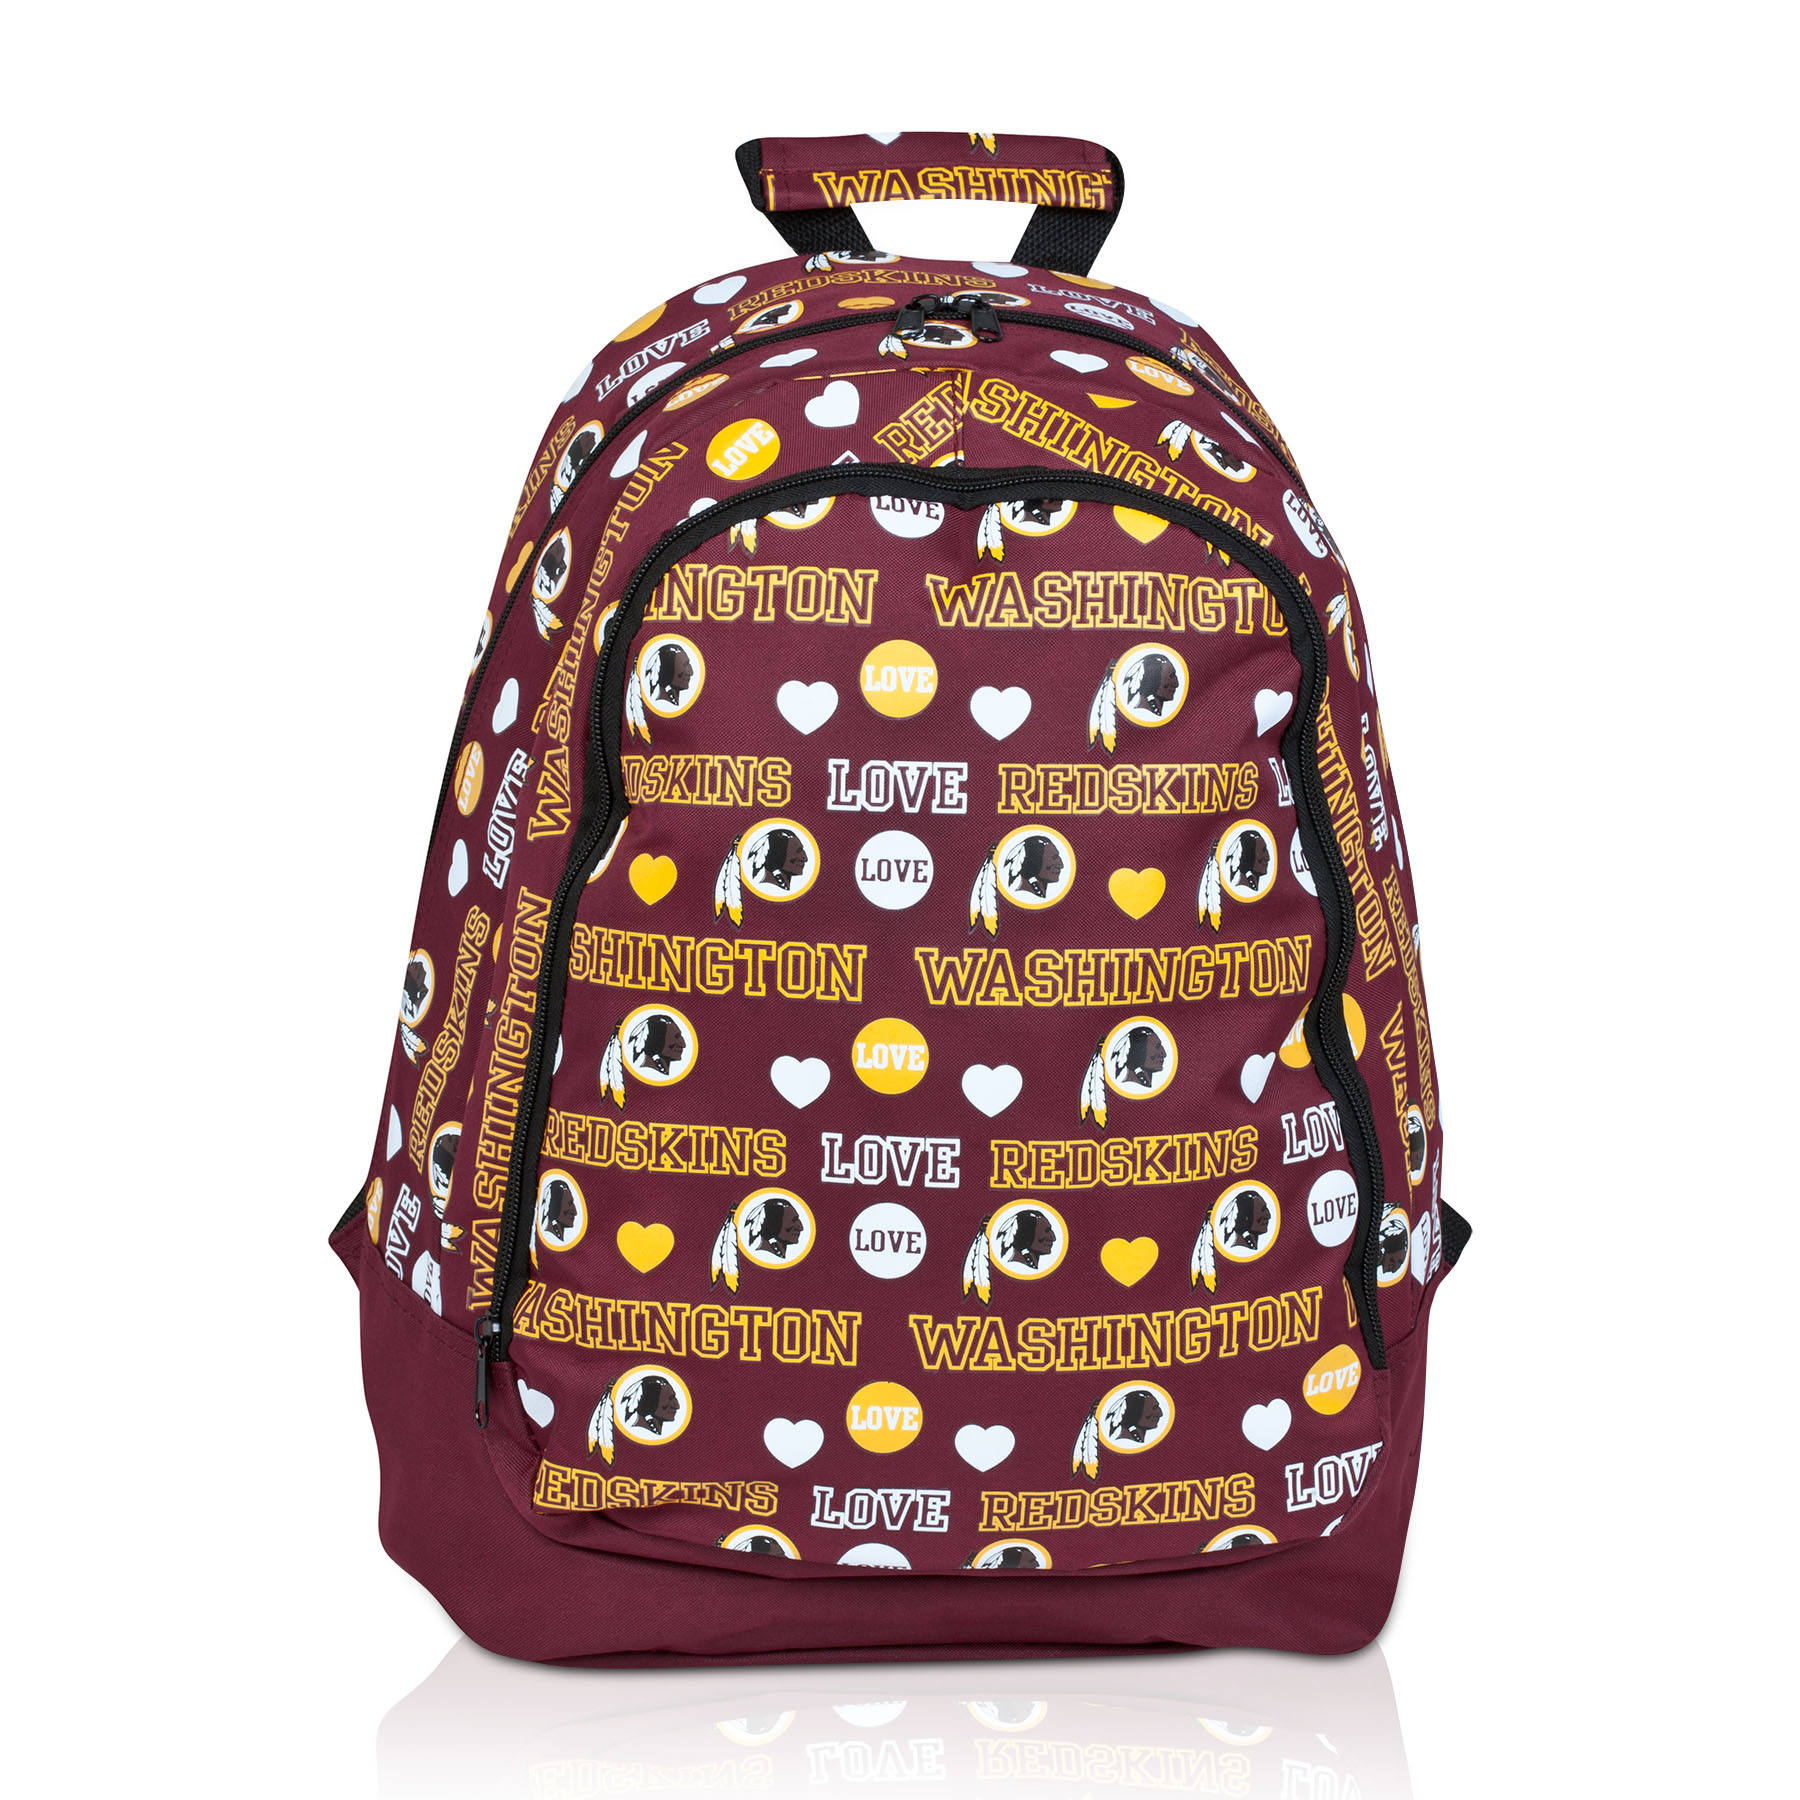 Washington Redskins Mural Love Print Backpack - Womens